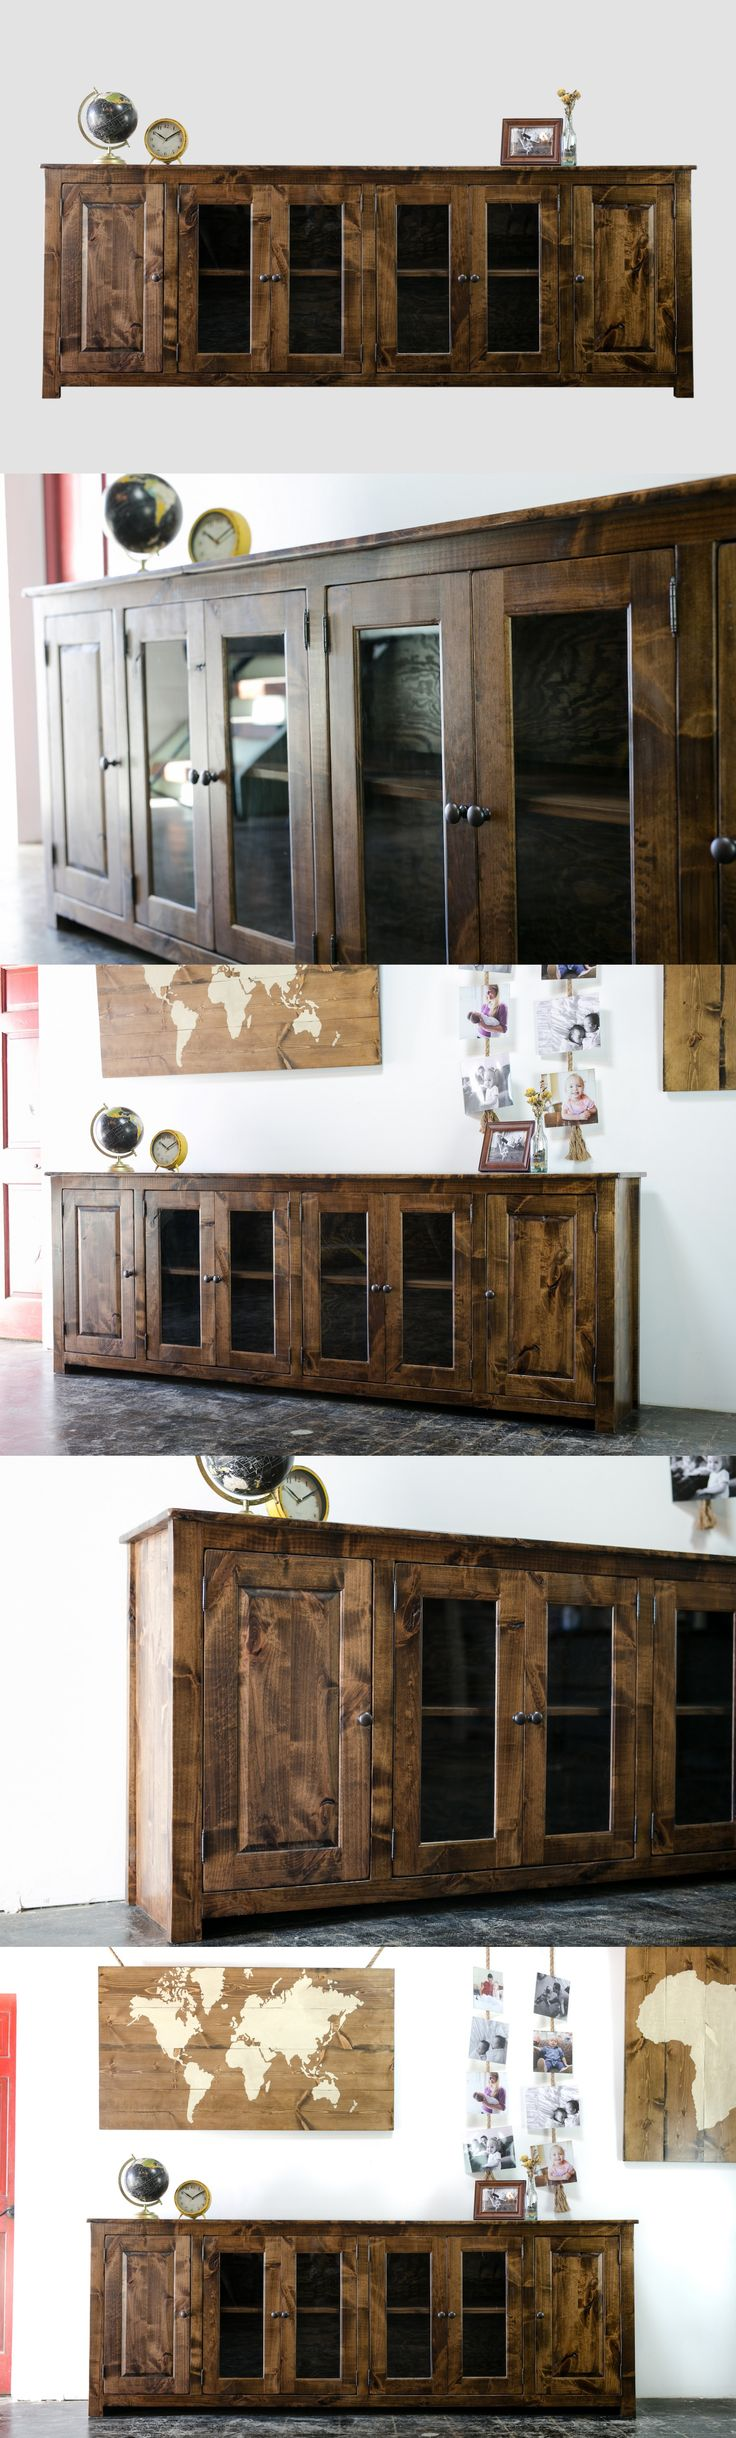 Home shop live tv stands chunky stretch tv stand - Best 10 Unique Tv Stands Ideas On Pinterest Studio Apartment Furniture Rustic Media Cabinets And Tv Stands